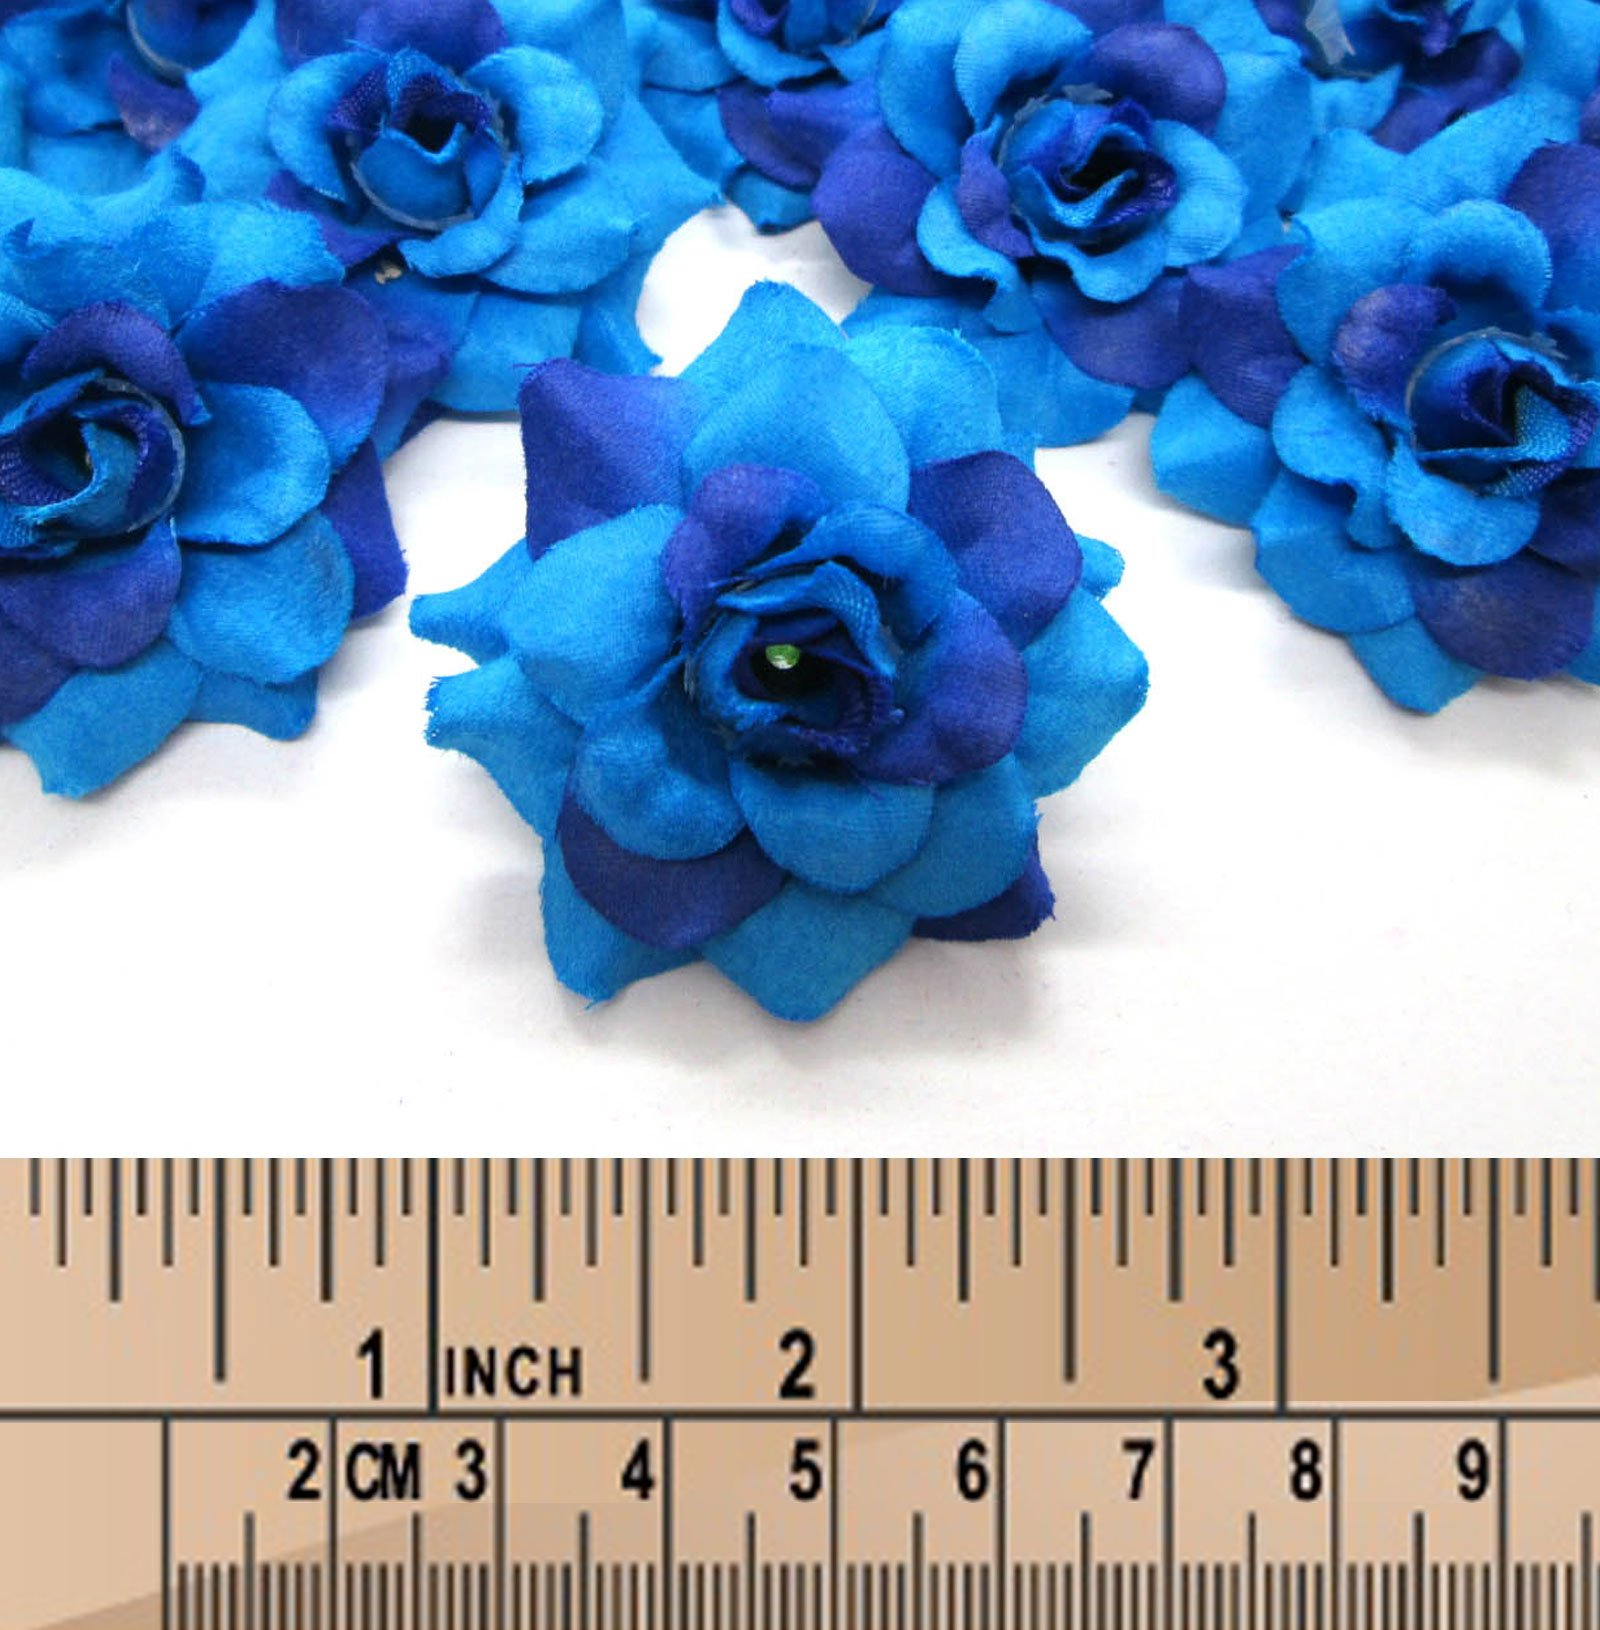 100-Silk-Two-Tone-Blue-Roses-Flower-Head-175-Artificial-Flowers-Heads-Fabric-Floral-Supplies-Wholesale-Lot-for-Wedding-Flowers-Accessories-Make-Bridal-Hair-Clips-Headbands-Dress